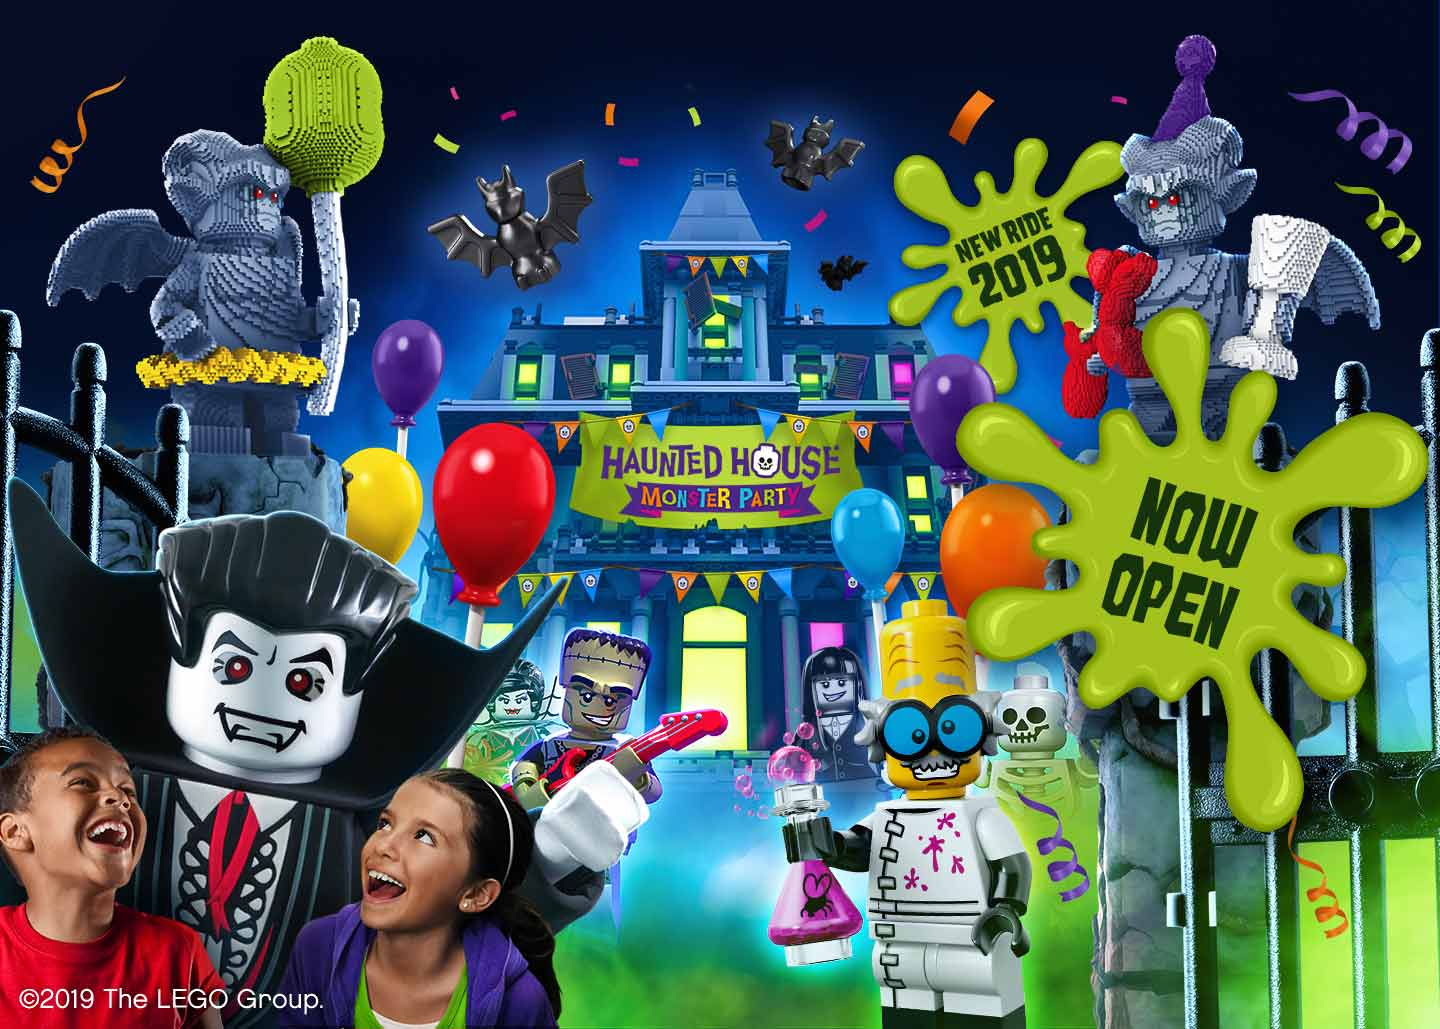 New Haunted House Monster Party at LEGOLAND Windsor Resort